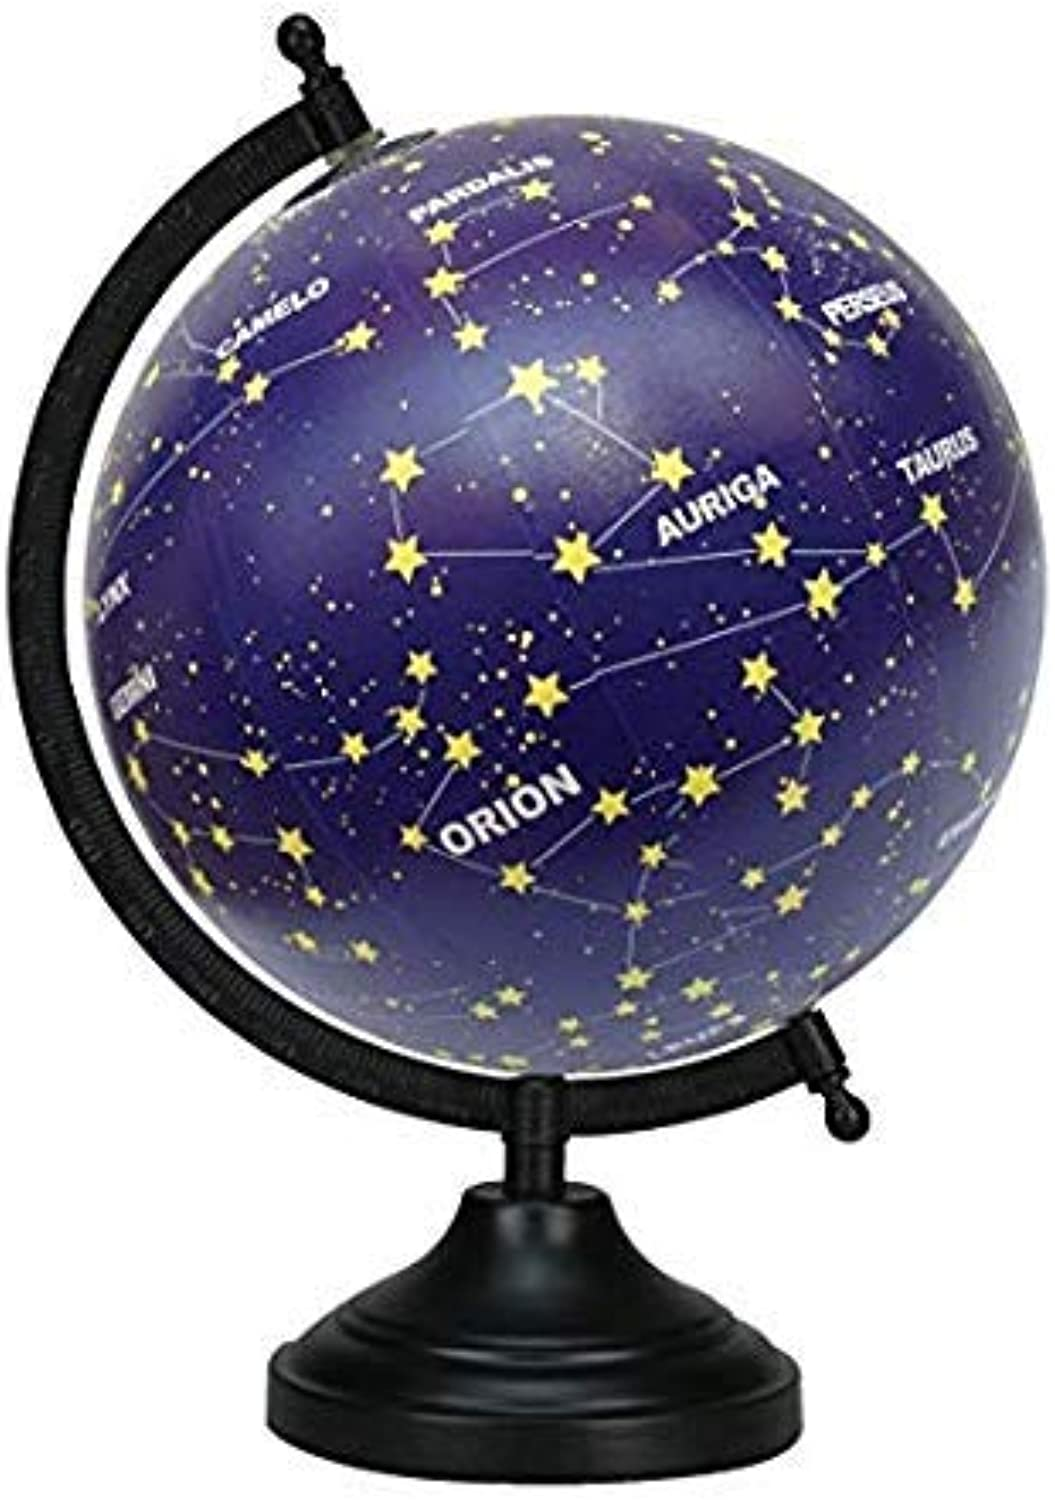 13  Unique Antiique Look bluee Decorative Desktop redating Globe Constellation Stars Globes Table Decor by Globes HubPerfect for Home, Office & Classroom